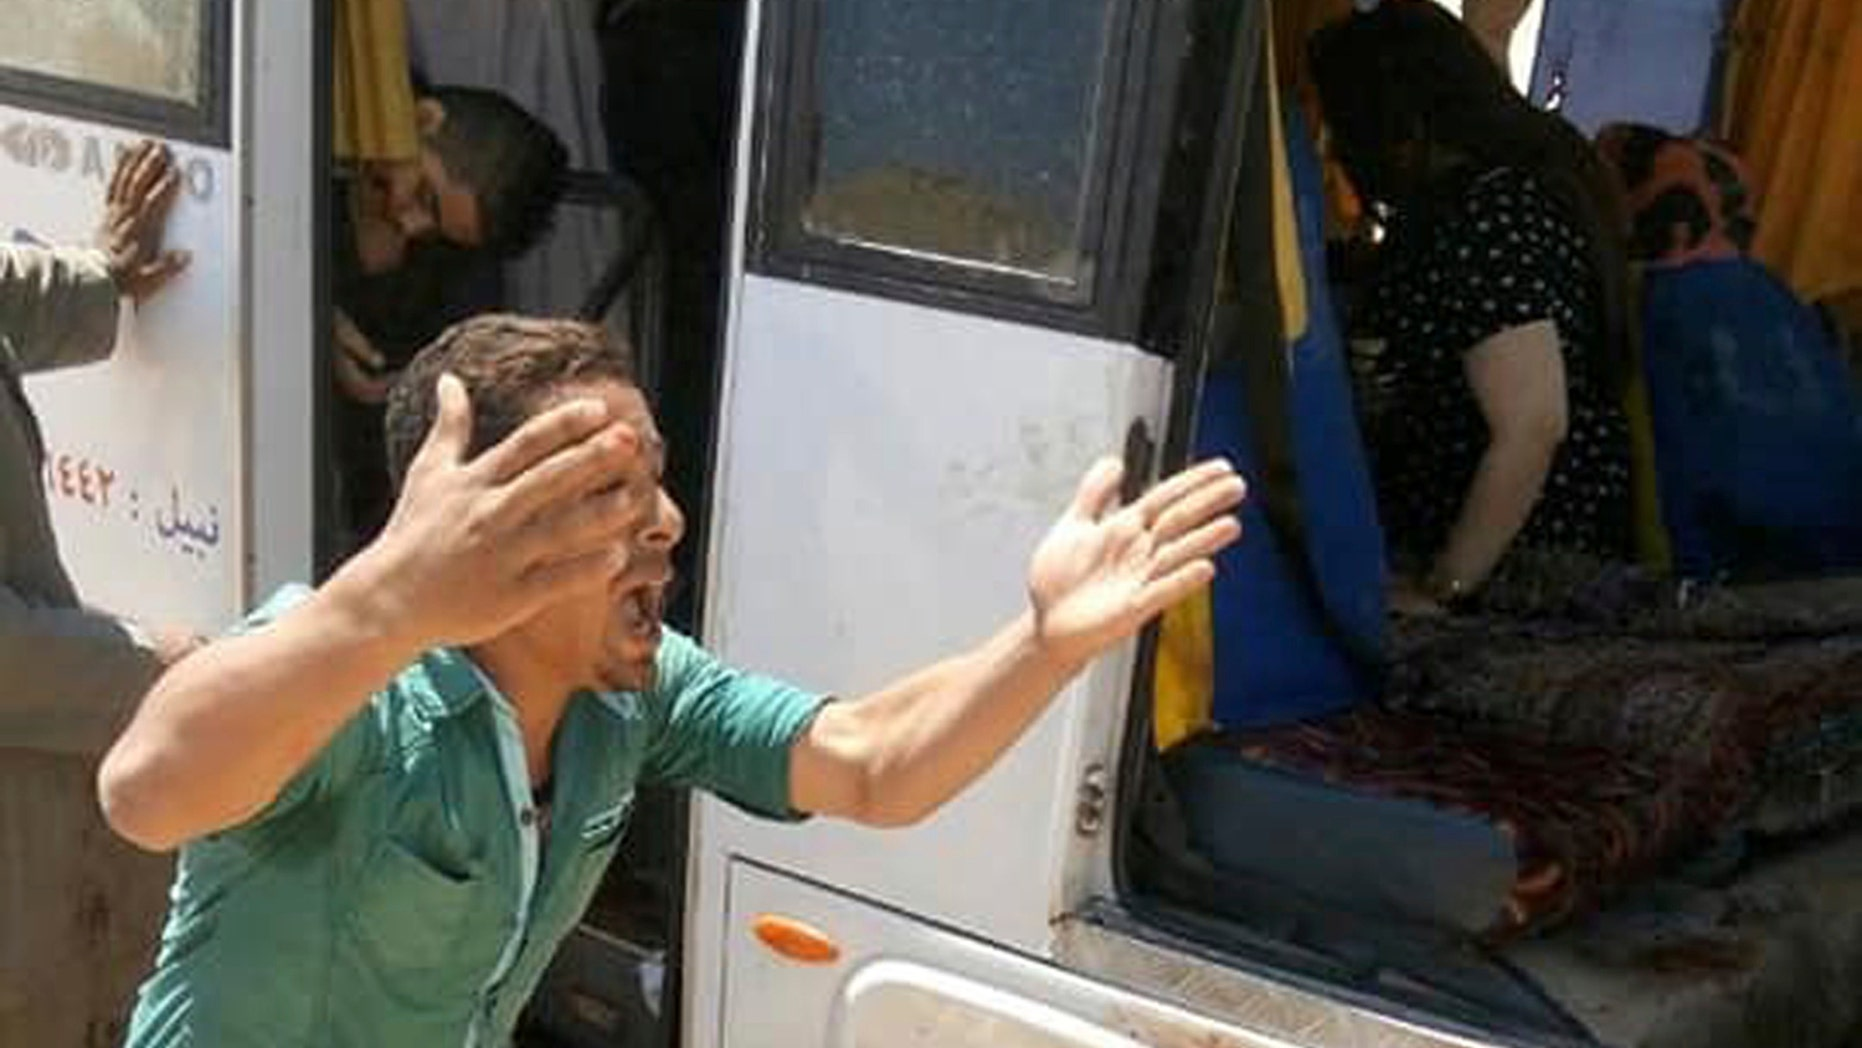 A man screams beside a bus carrying Coptic Christians which came under attack outside Cairo, Friday, Nov. 2, 2018. Islamic militants on Friday ambushed a bus carrying Christian pilgrims on their way to a remote desert monastery south of the Egyptian capital, killing at least seven and wounding a dozen more, the Interior Ministry said. (Egypt's Coptic Orthodox Church via AP)